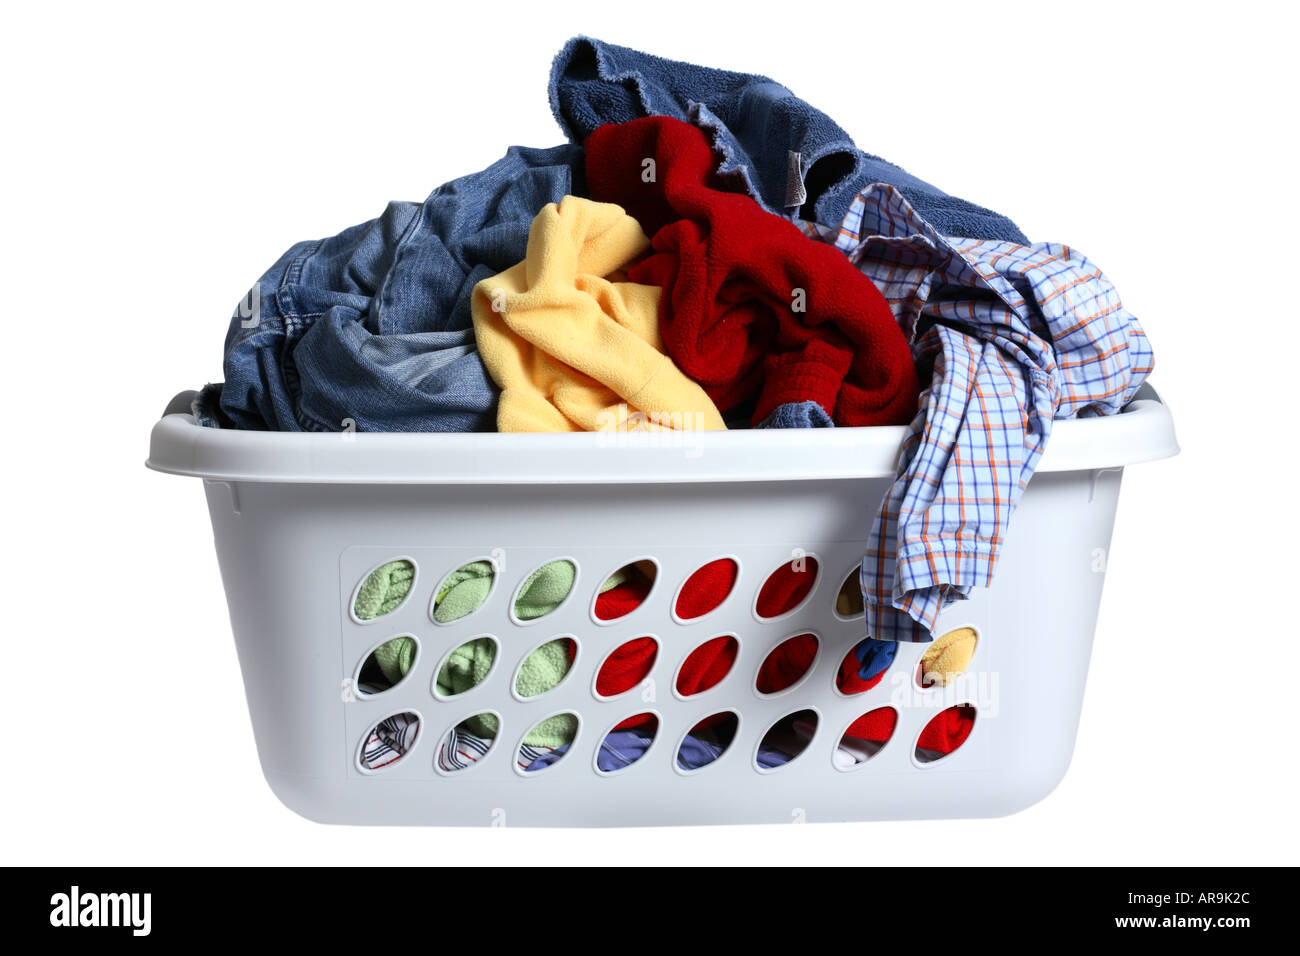 Dirty Laundry Baskets Laundry Basket Full Of Dirty Clothes Stock Photo Royalty